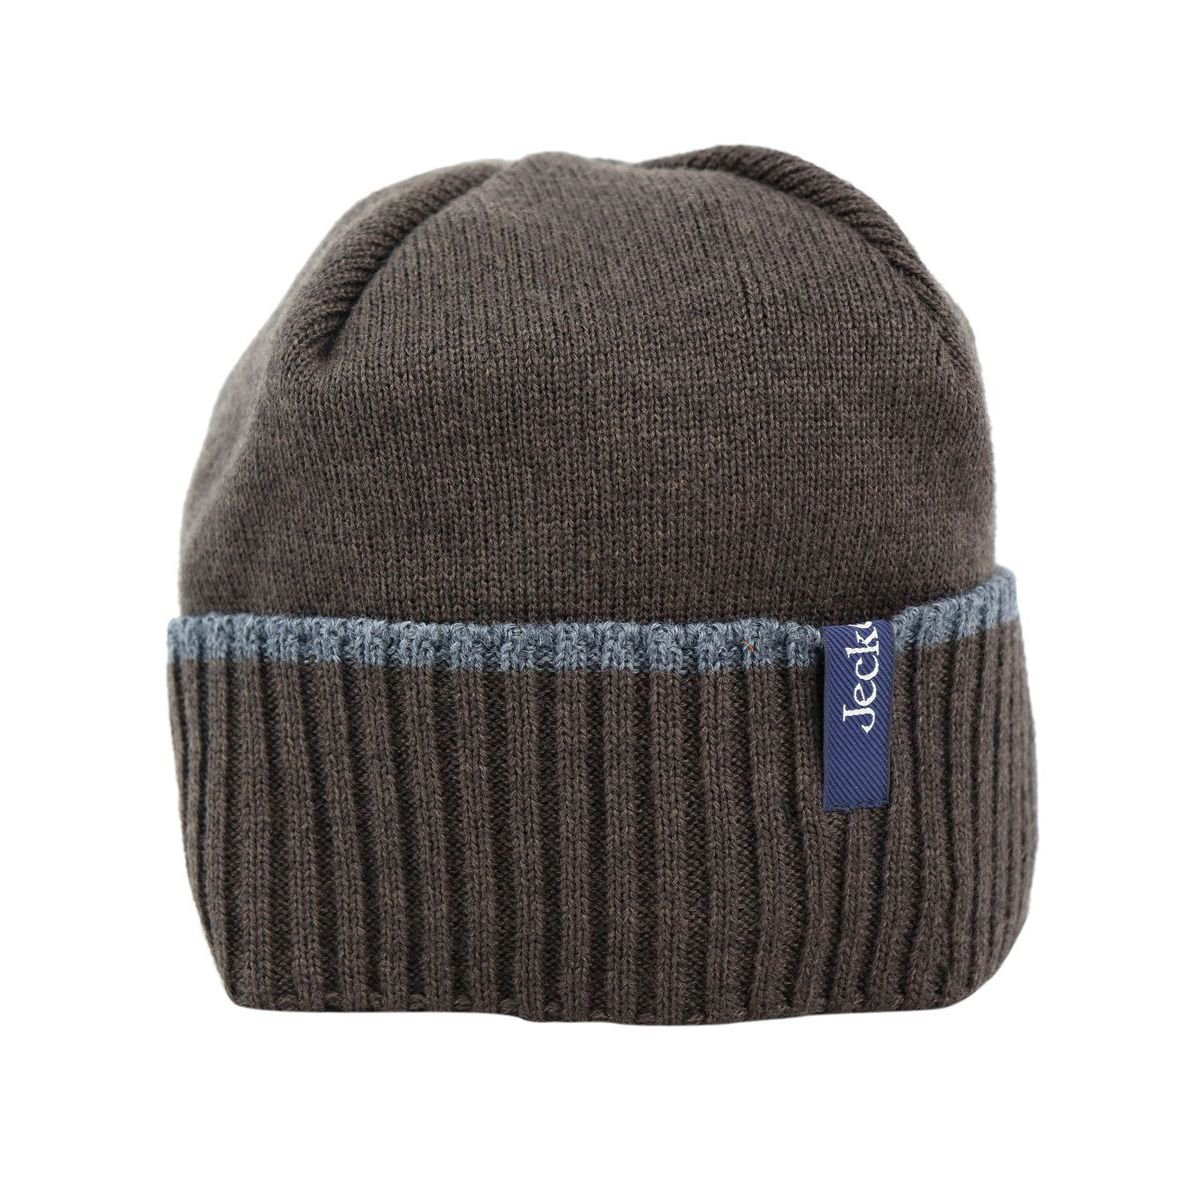 Wool blend hat with ribbed cuff Moro Jeckerson